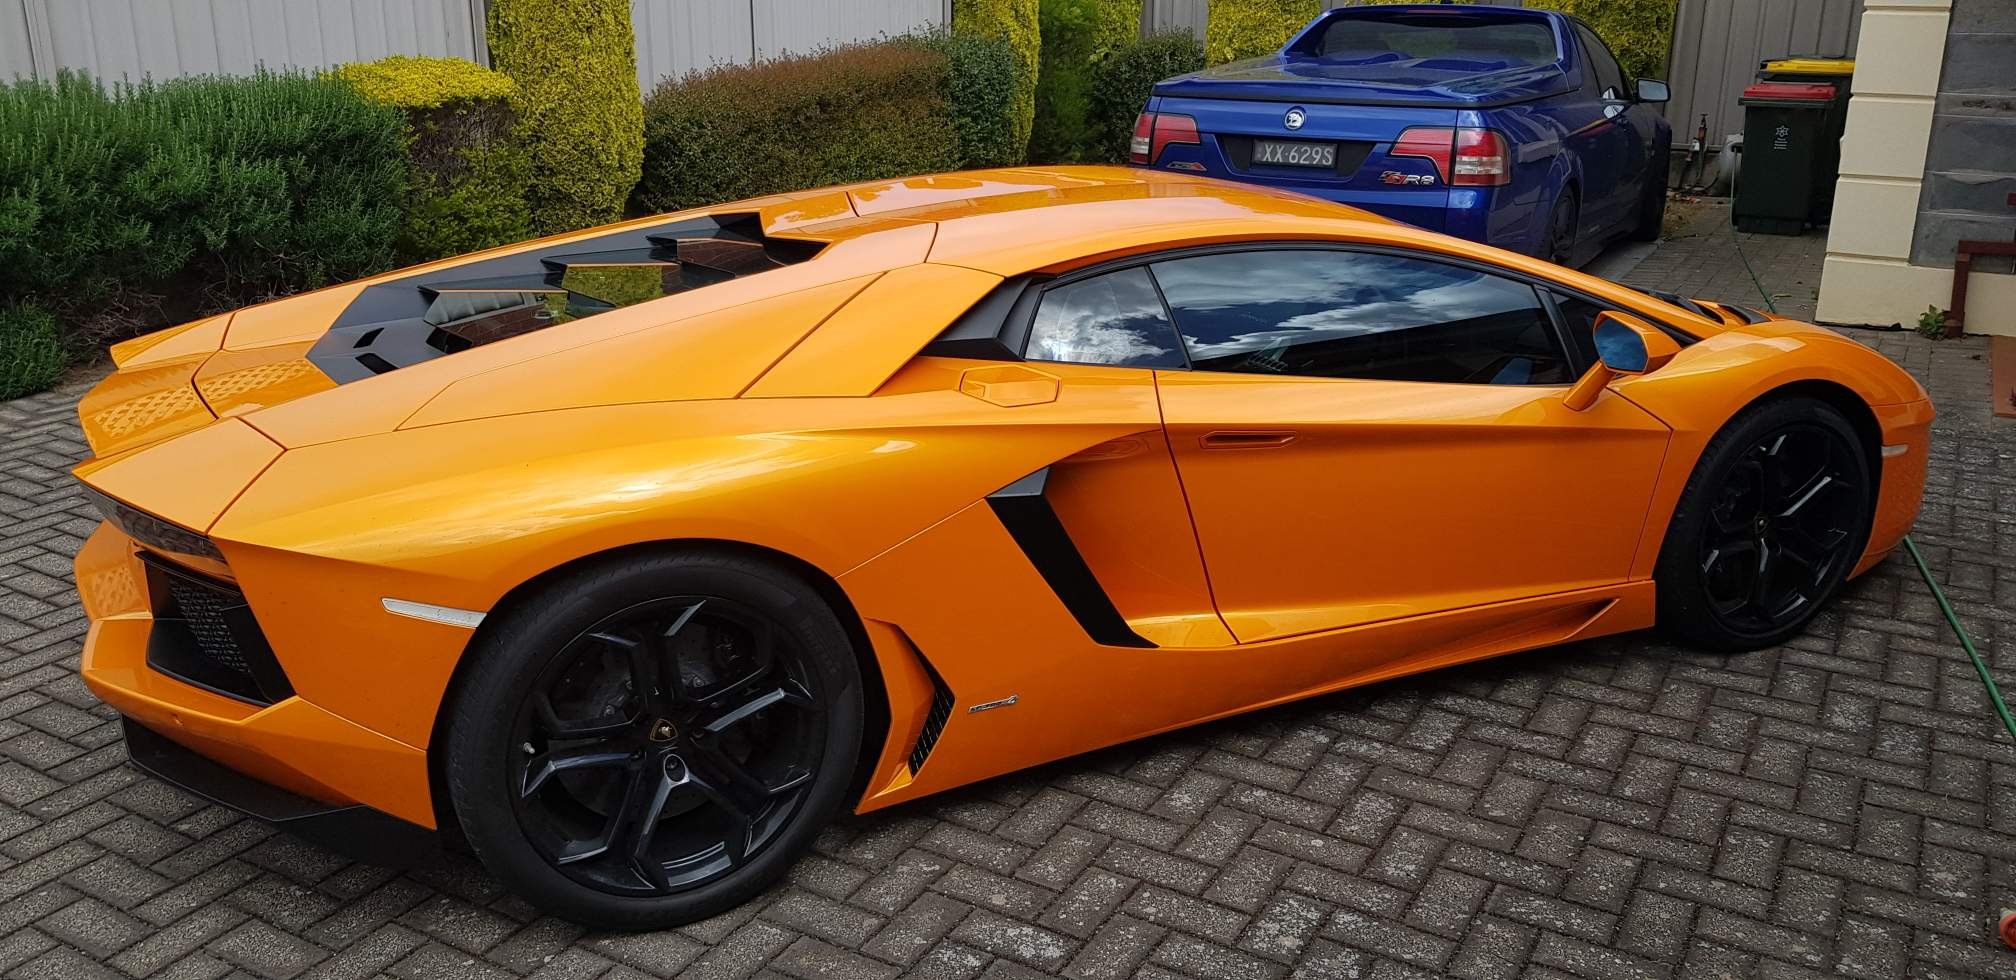 This is one of Detailing Adelaide favourite regular detailing jobs a bright orange fabulous Lamborghini - Gallery of cool detailing jobs